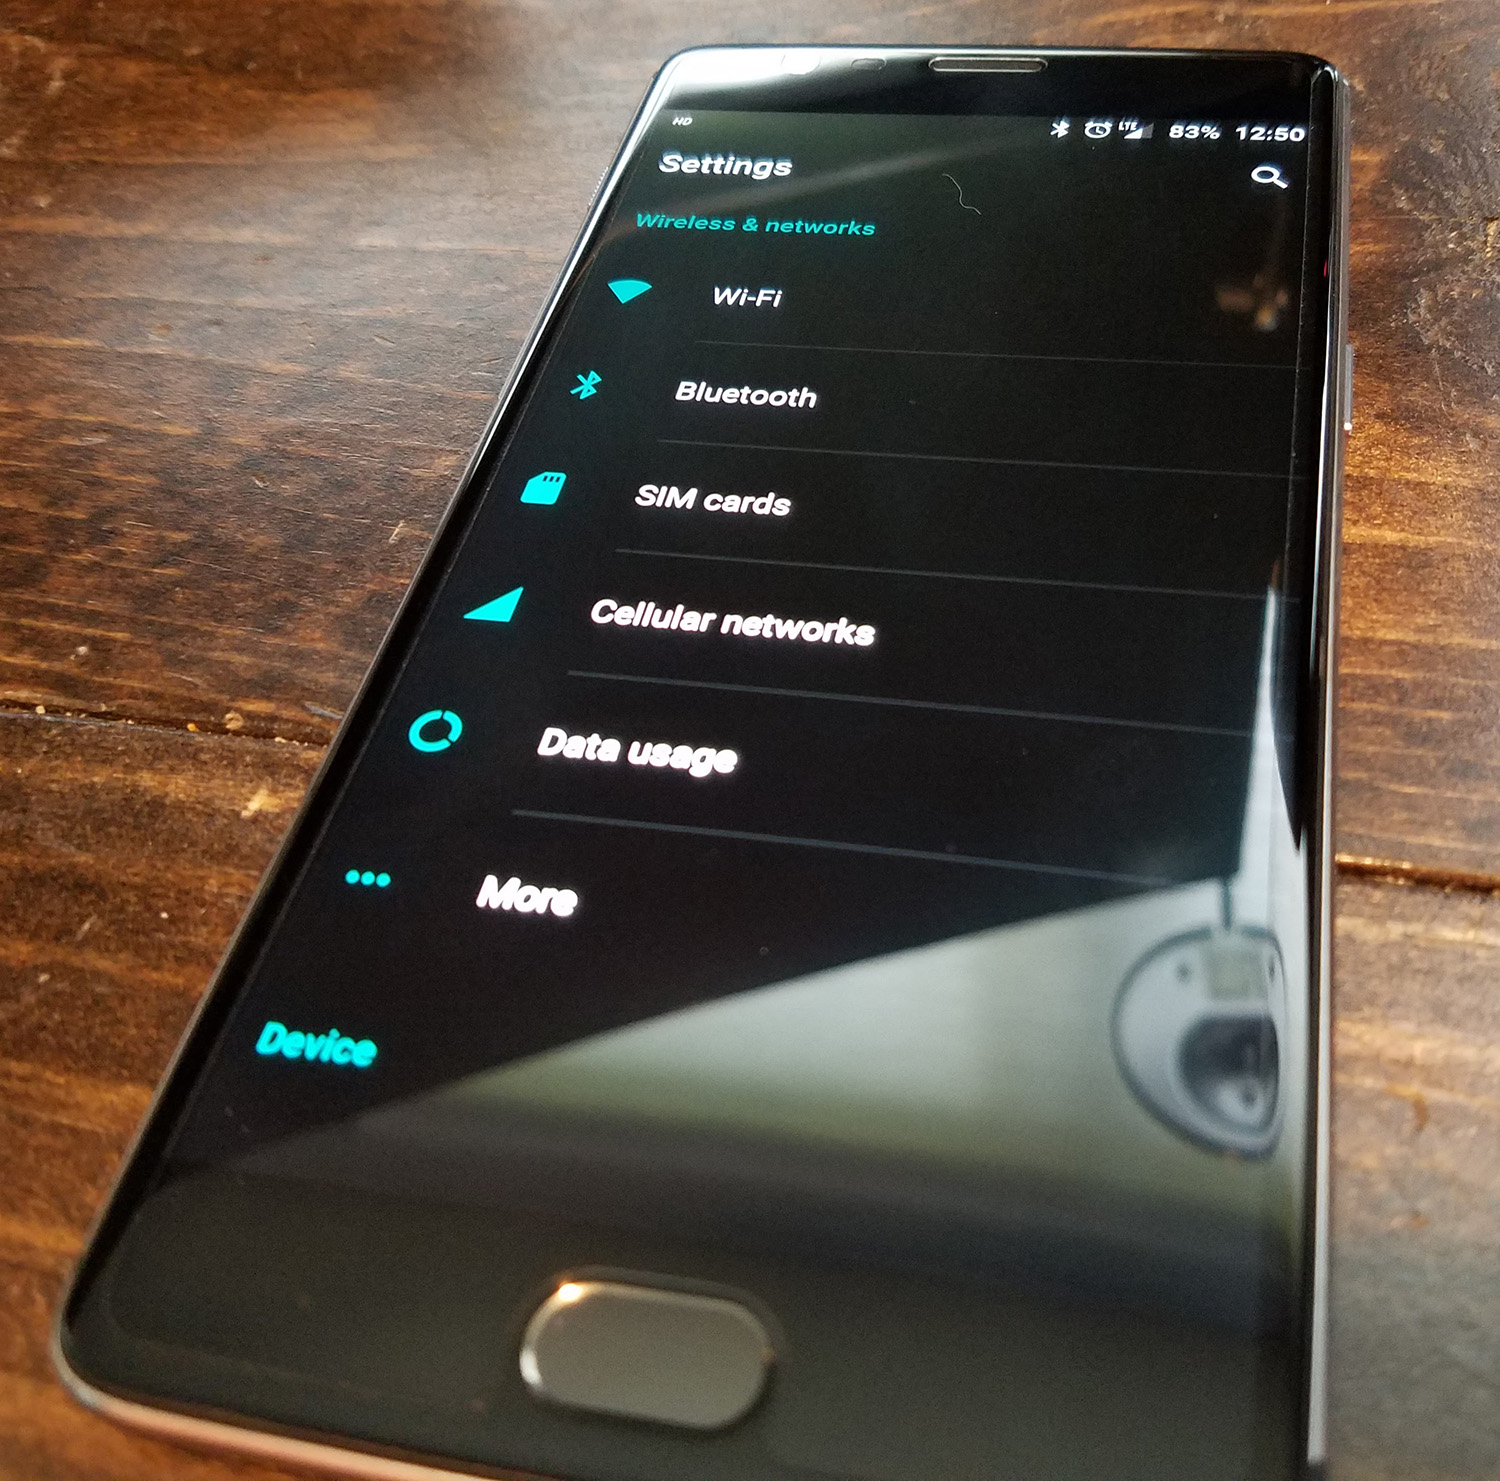 OnePlus 3 dark theme